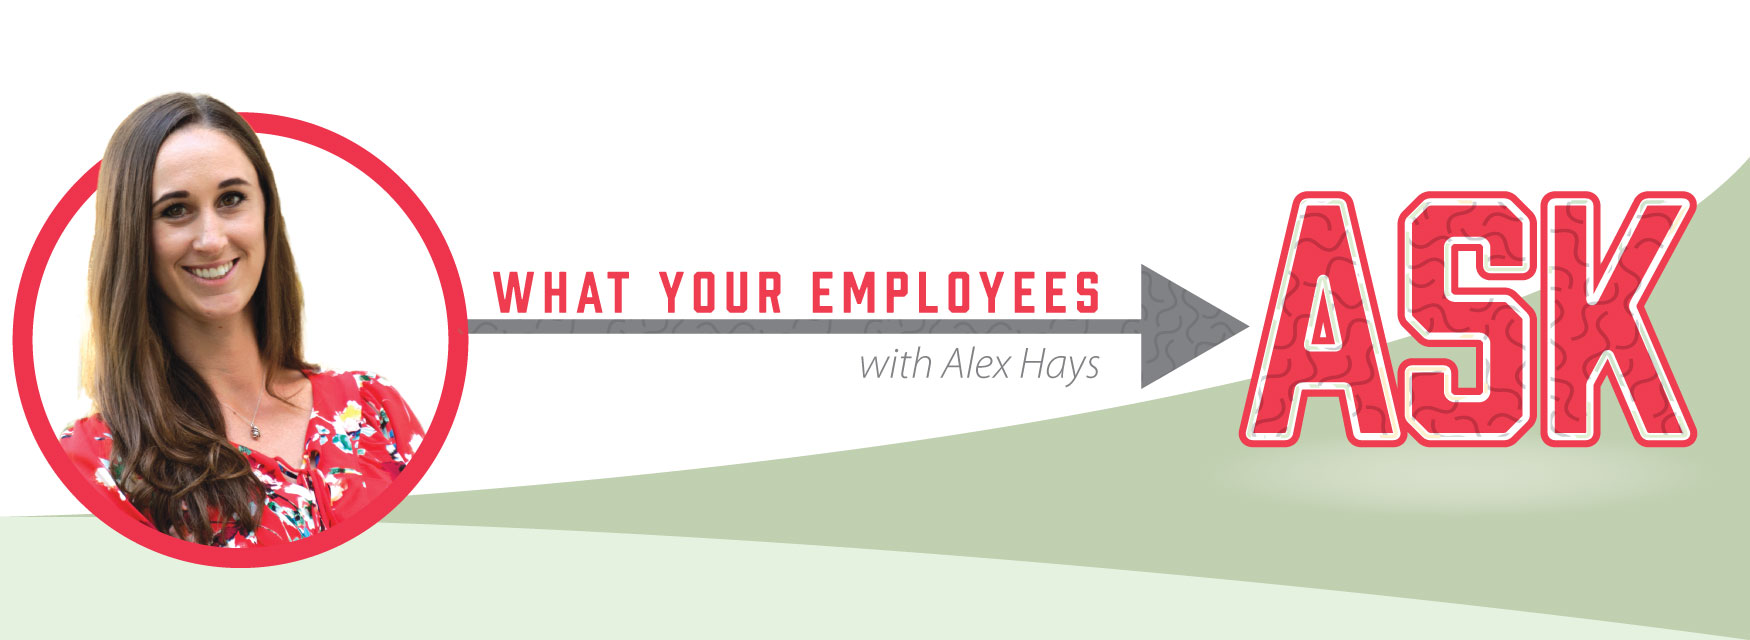 What your employees ask